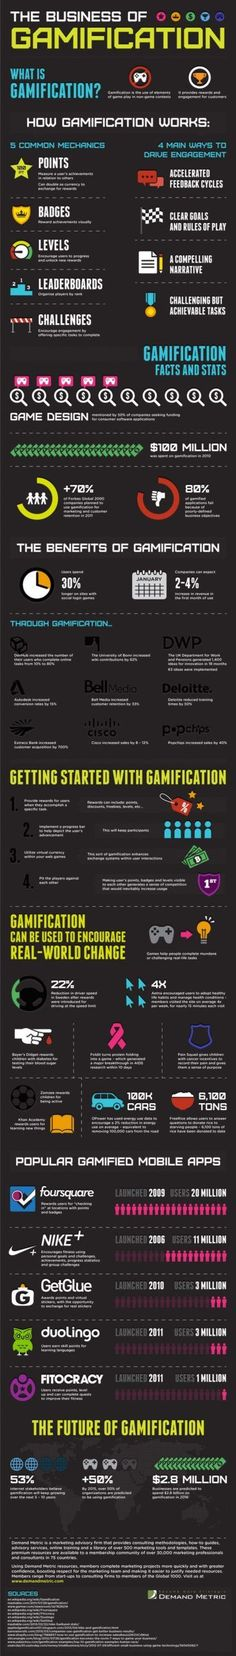 The Business Of Gamification #Inphografic